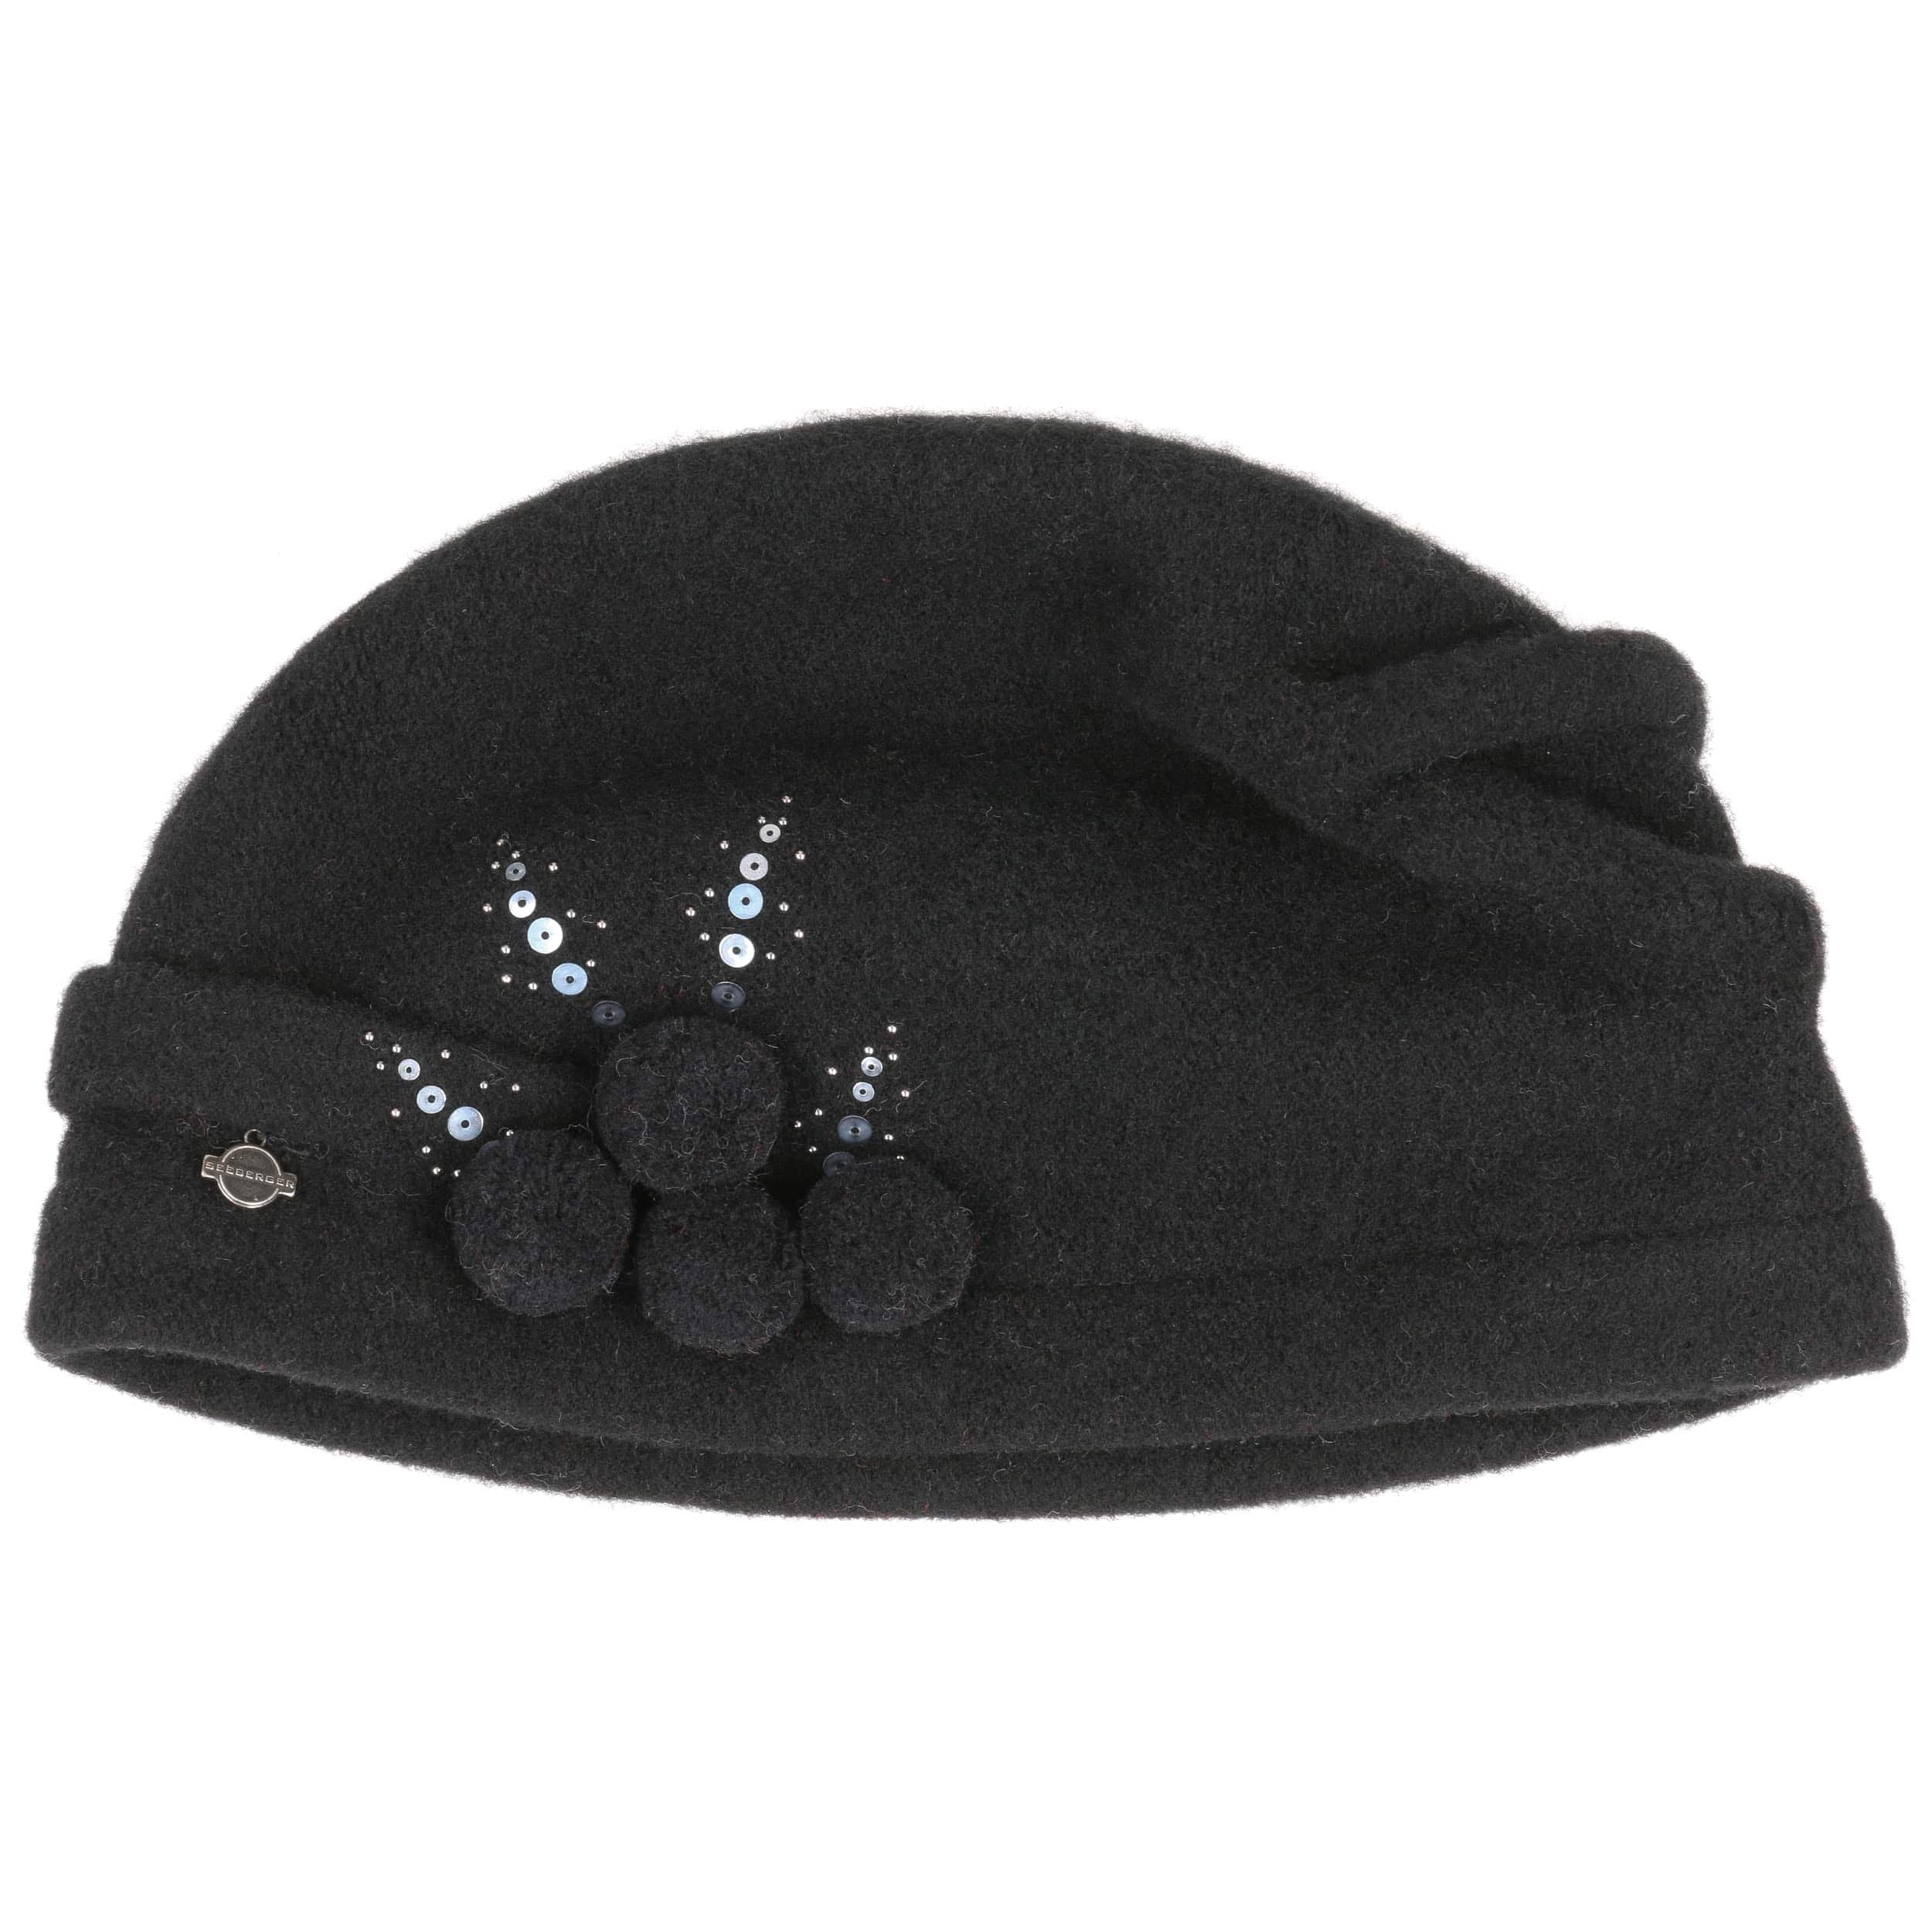 ... Sequin Milled Wool Hat by Seeberger - black 1 ... f3e80a11046a